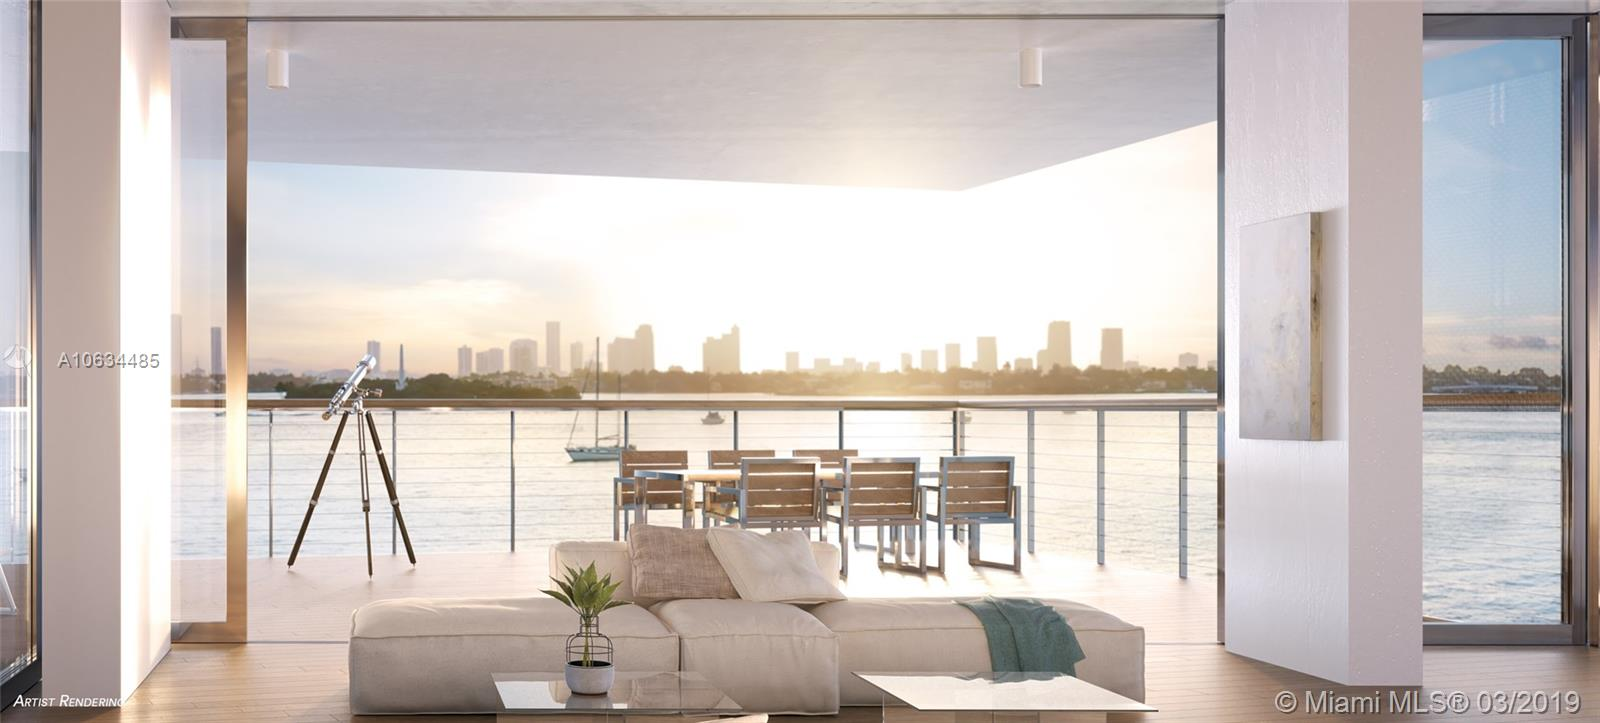 1300 Monad Terrace #PHB, Miami Beach, FL 33139